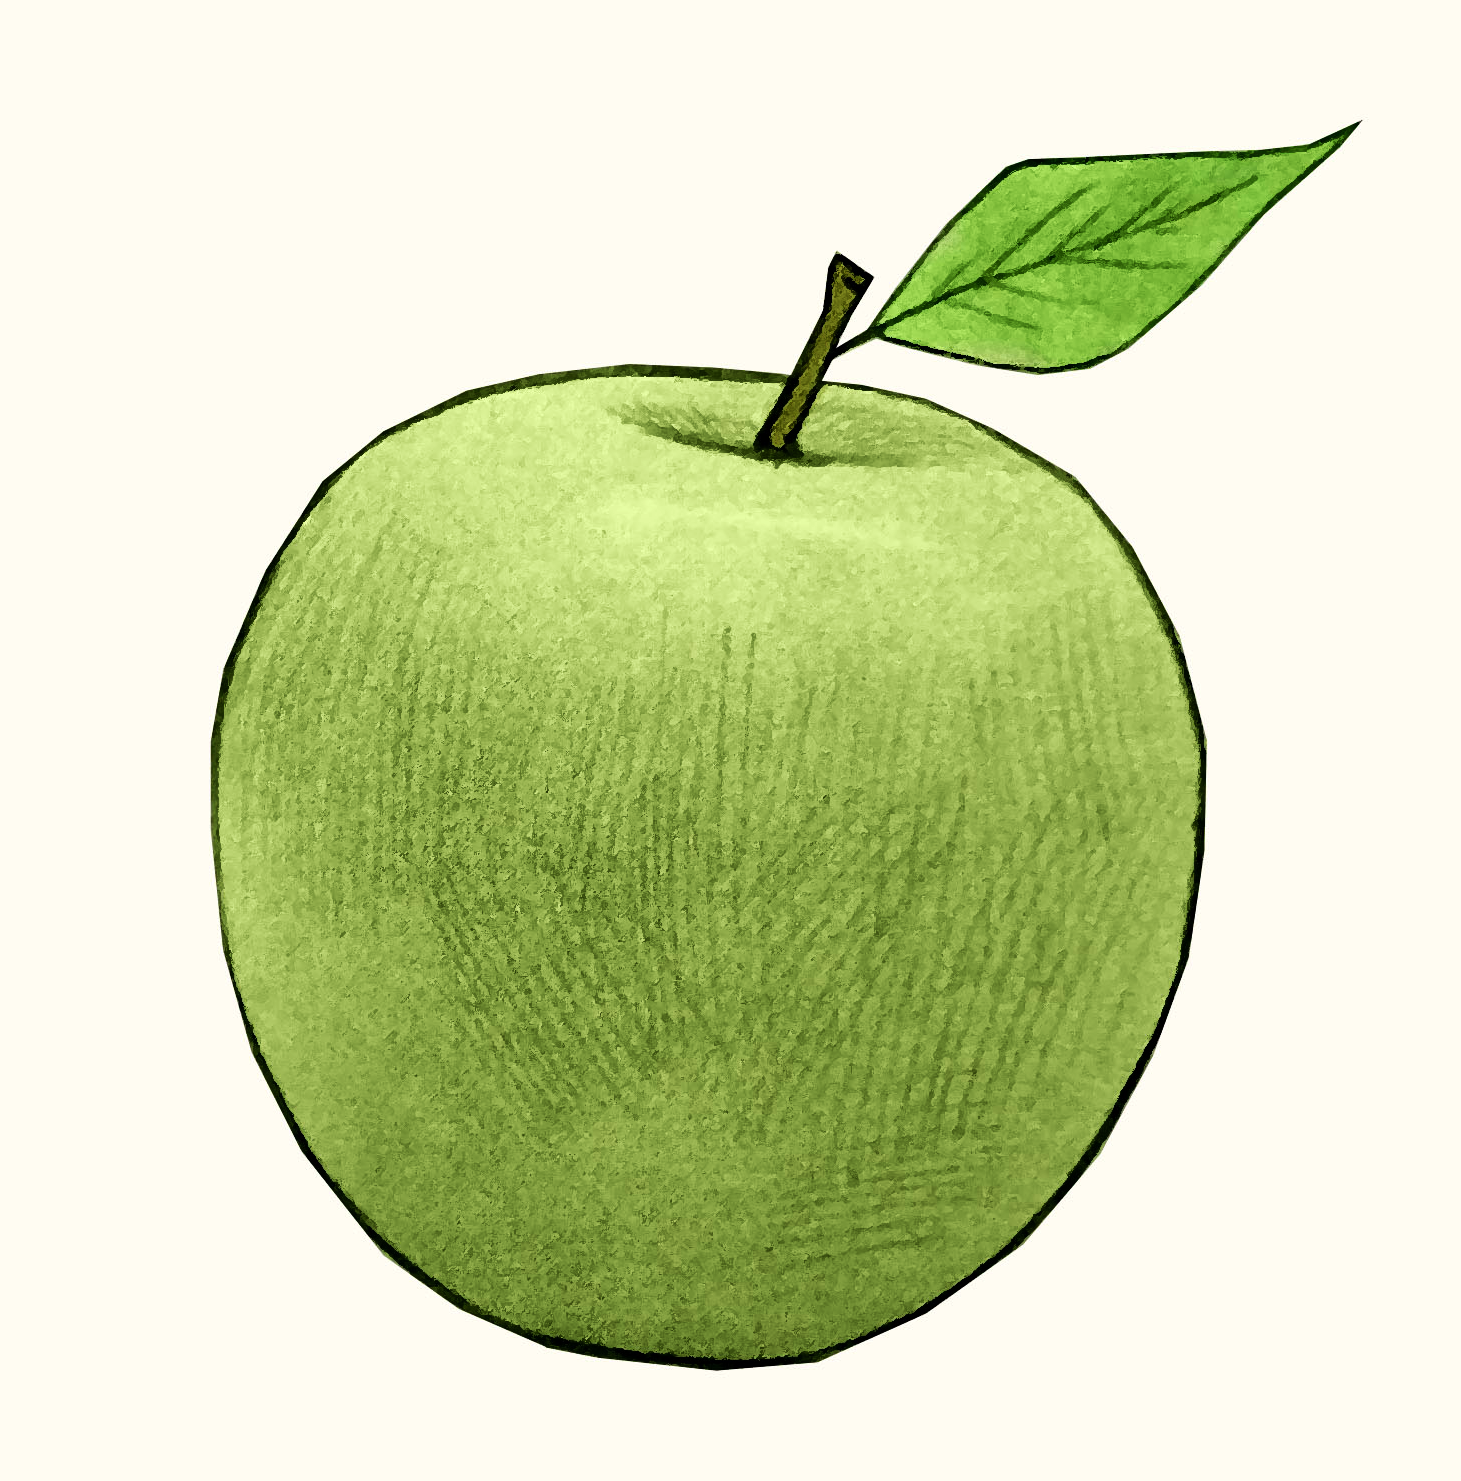 Green granny smith apple #apples